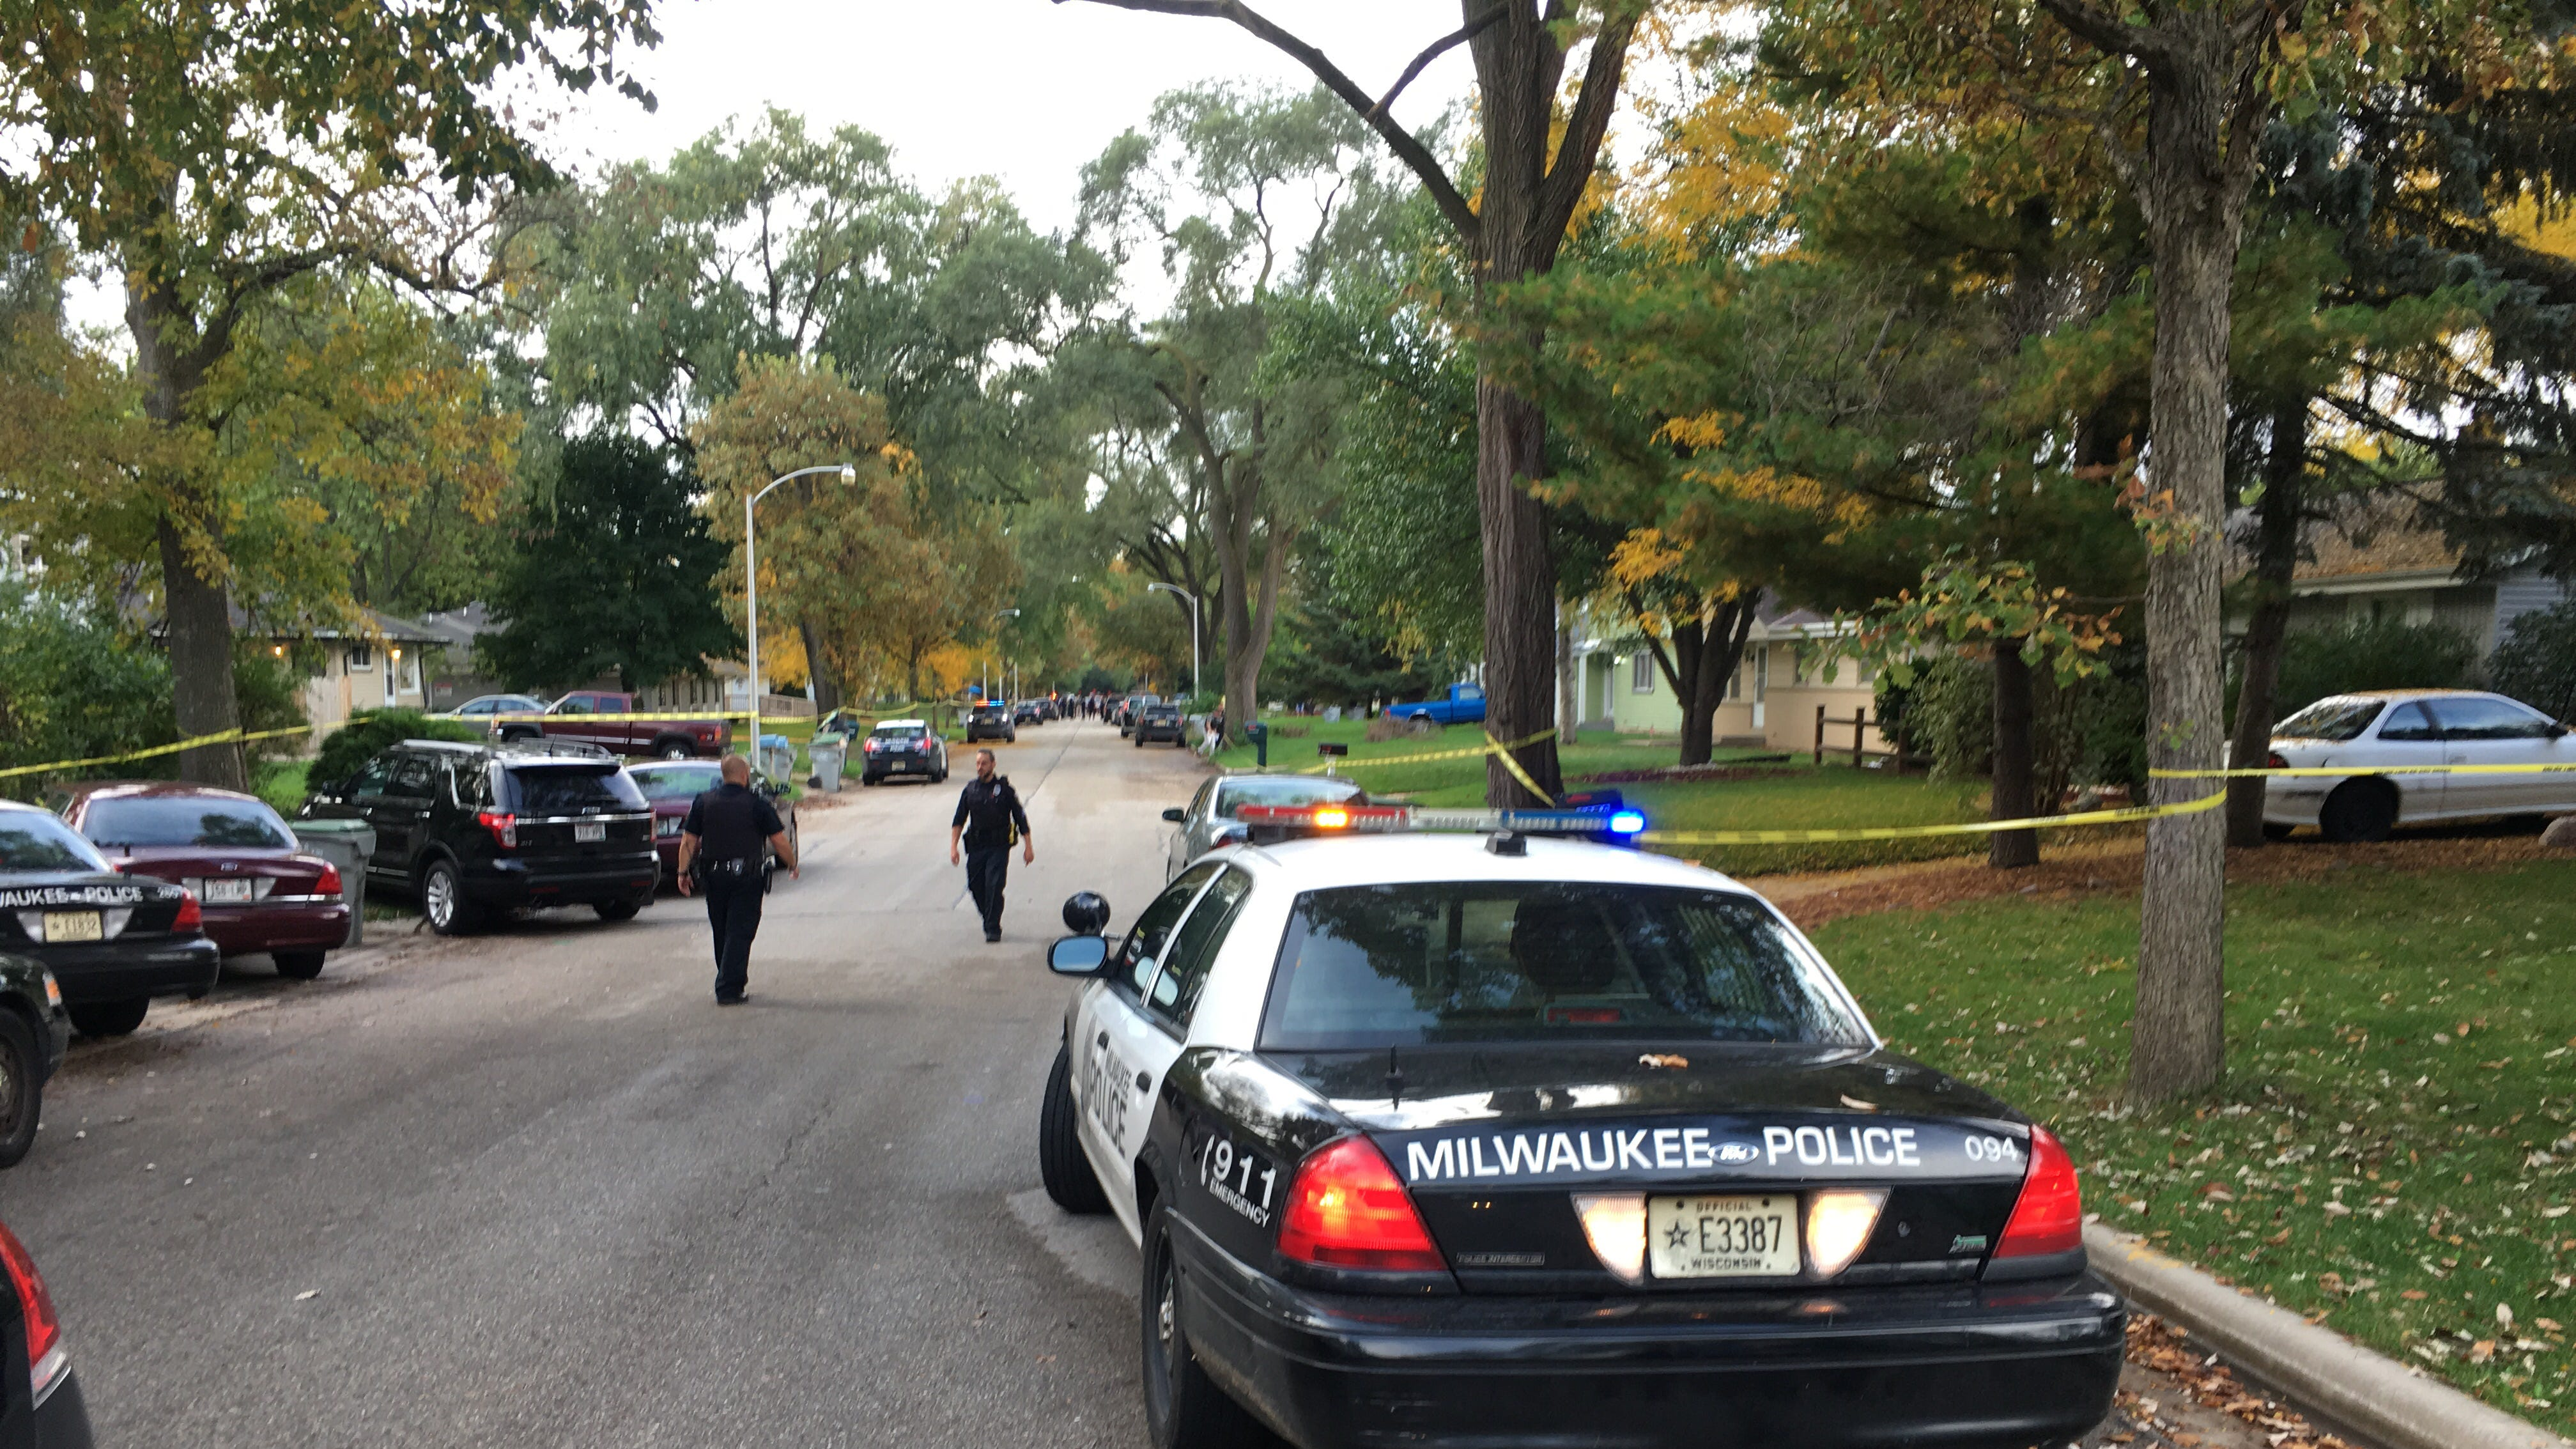 Milwaukee police shoot armed suspect outside an apartment building on N. 101st St. early Wednesday